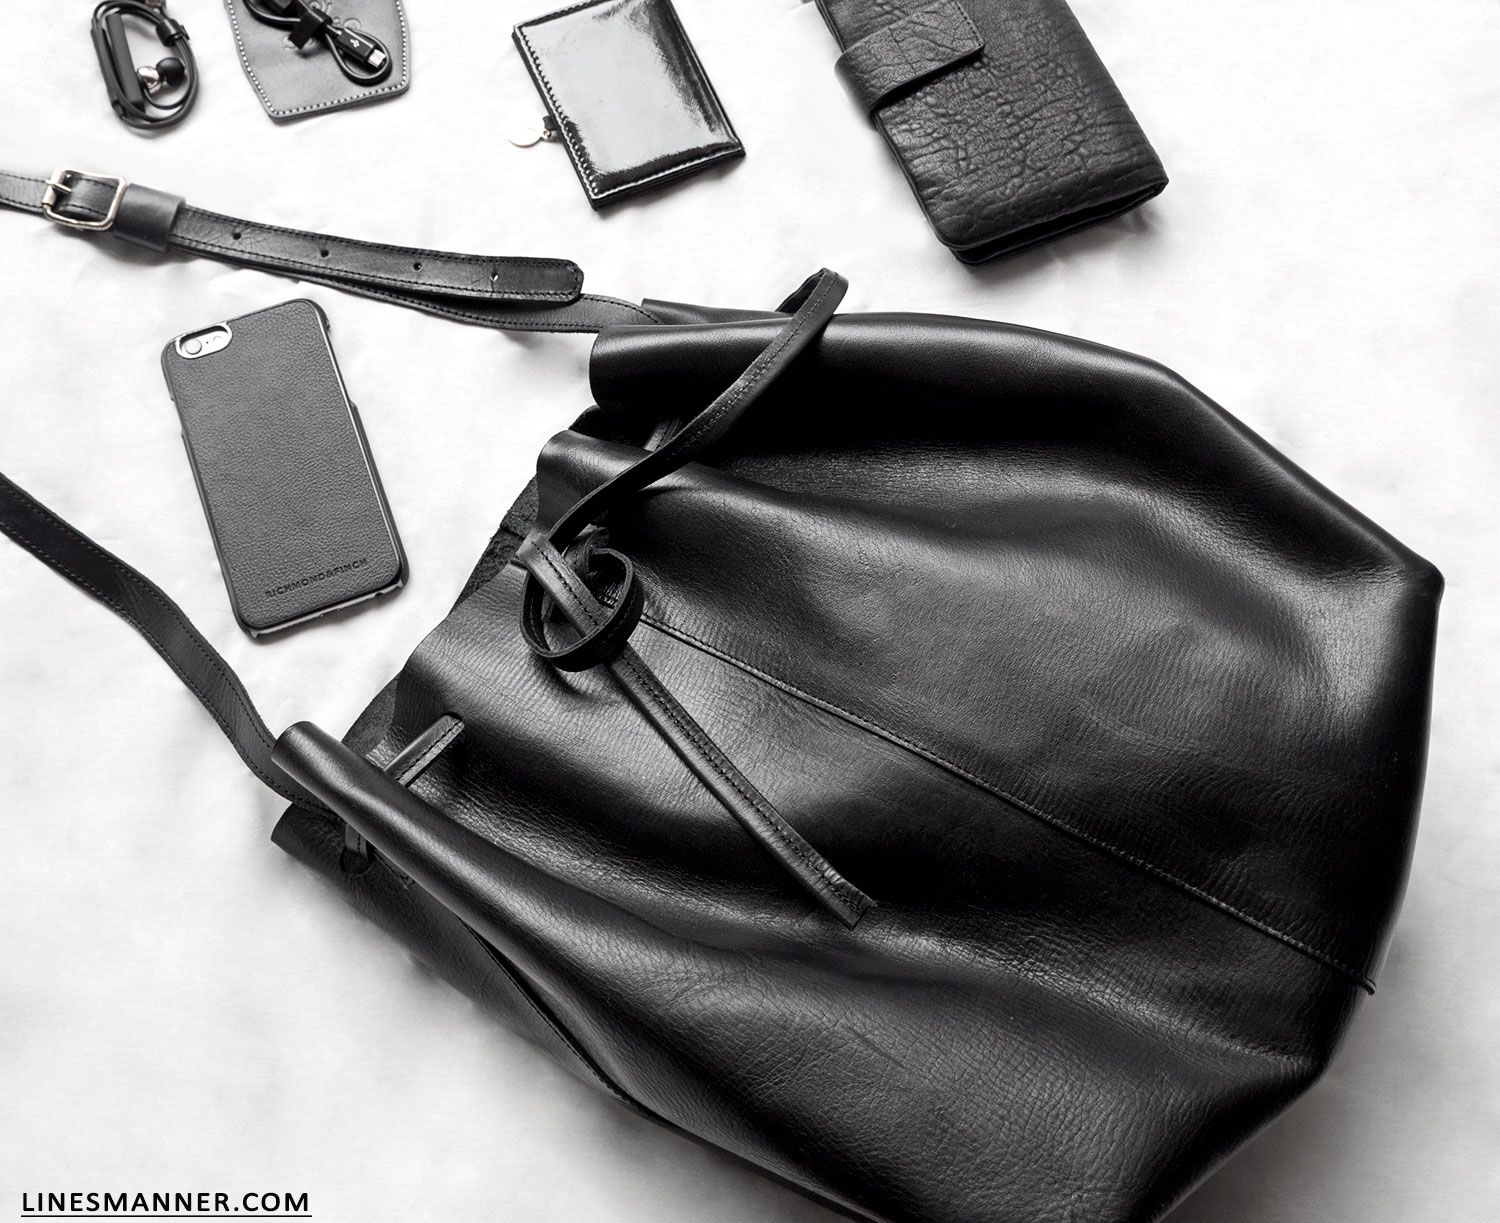 Lines-Manner-All_Back-Essentials-Bucket_bag-Utilities-Textures-Handcrafted-Leather-Sustainable-Luxury-Minimal-Details-1